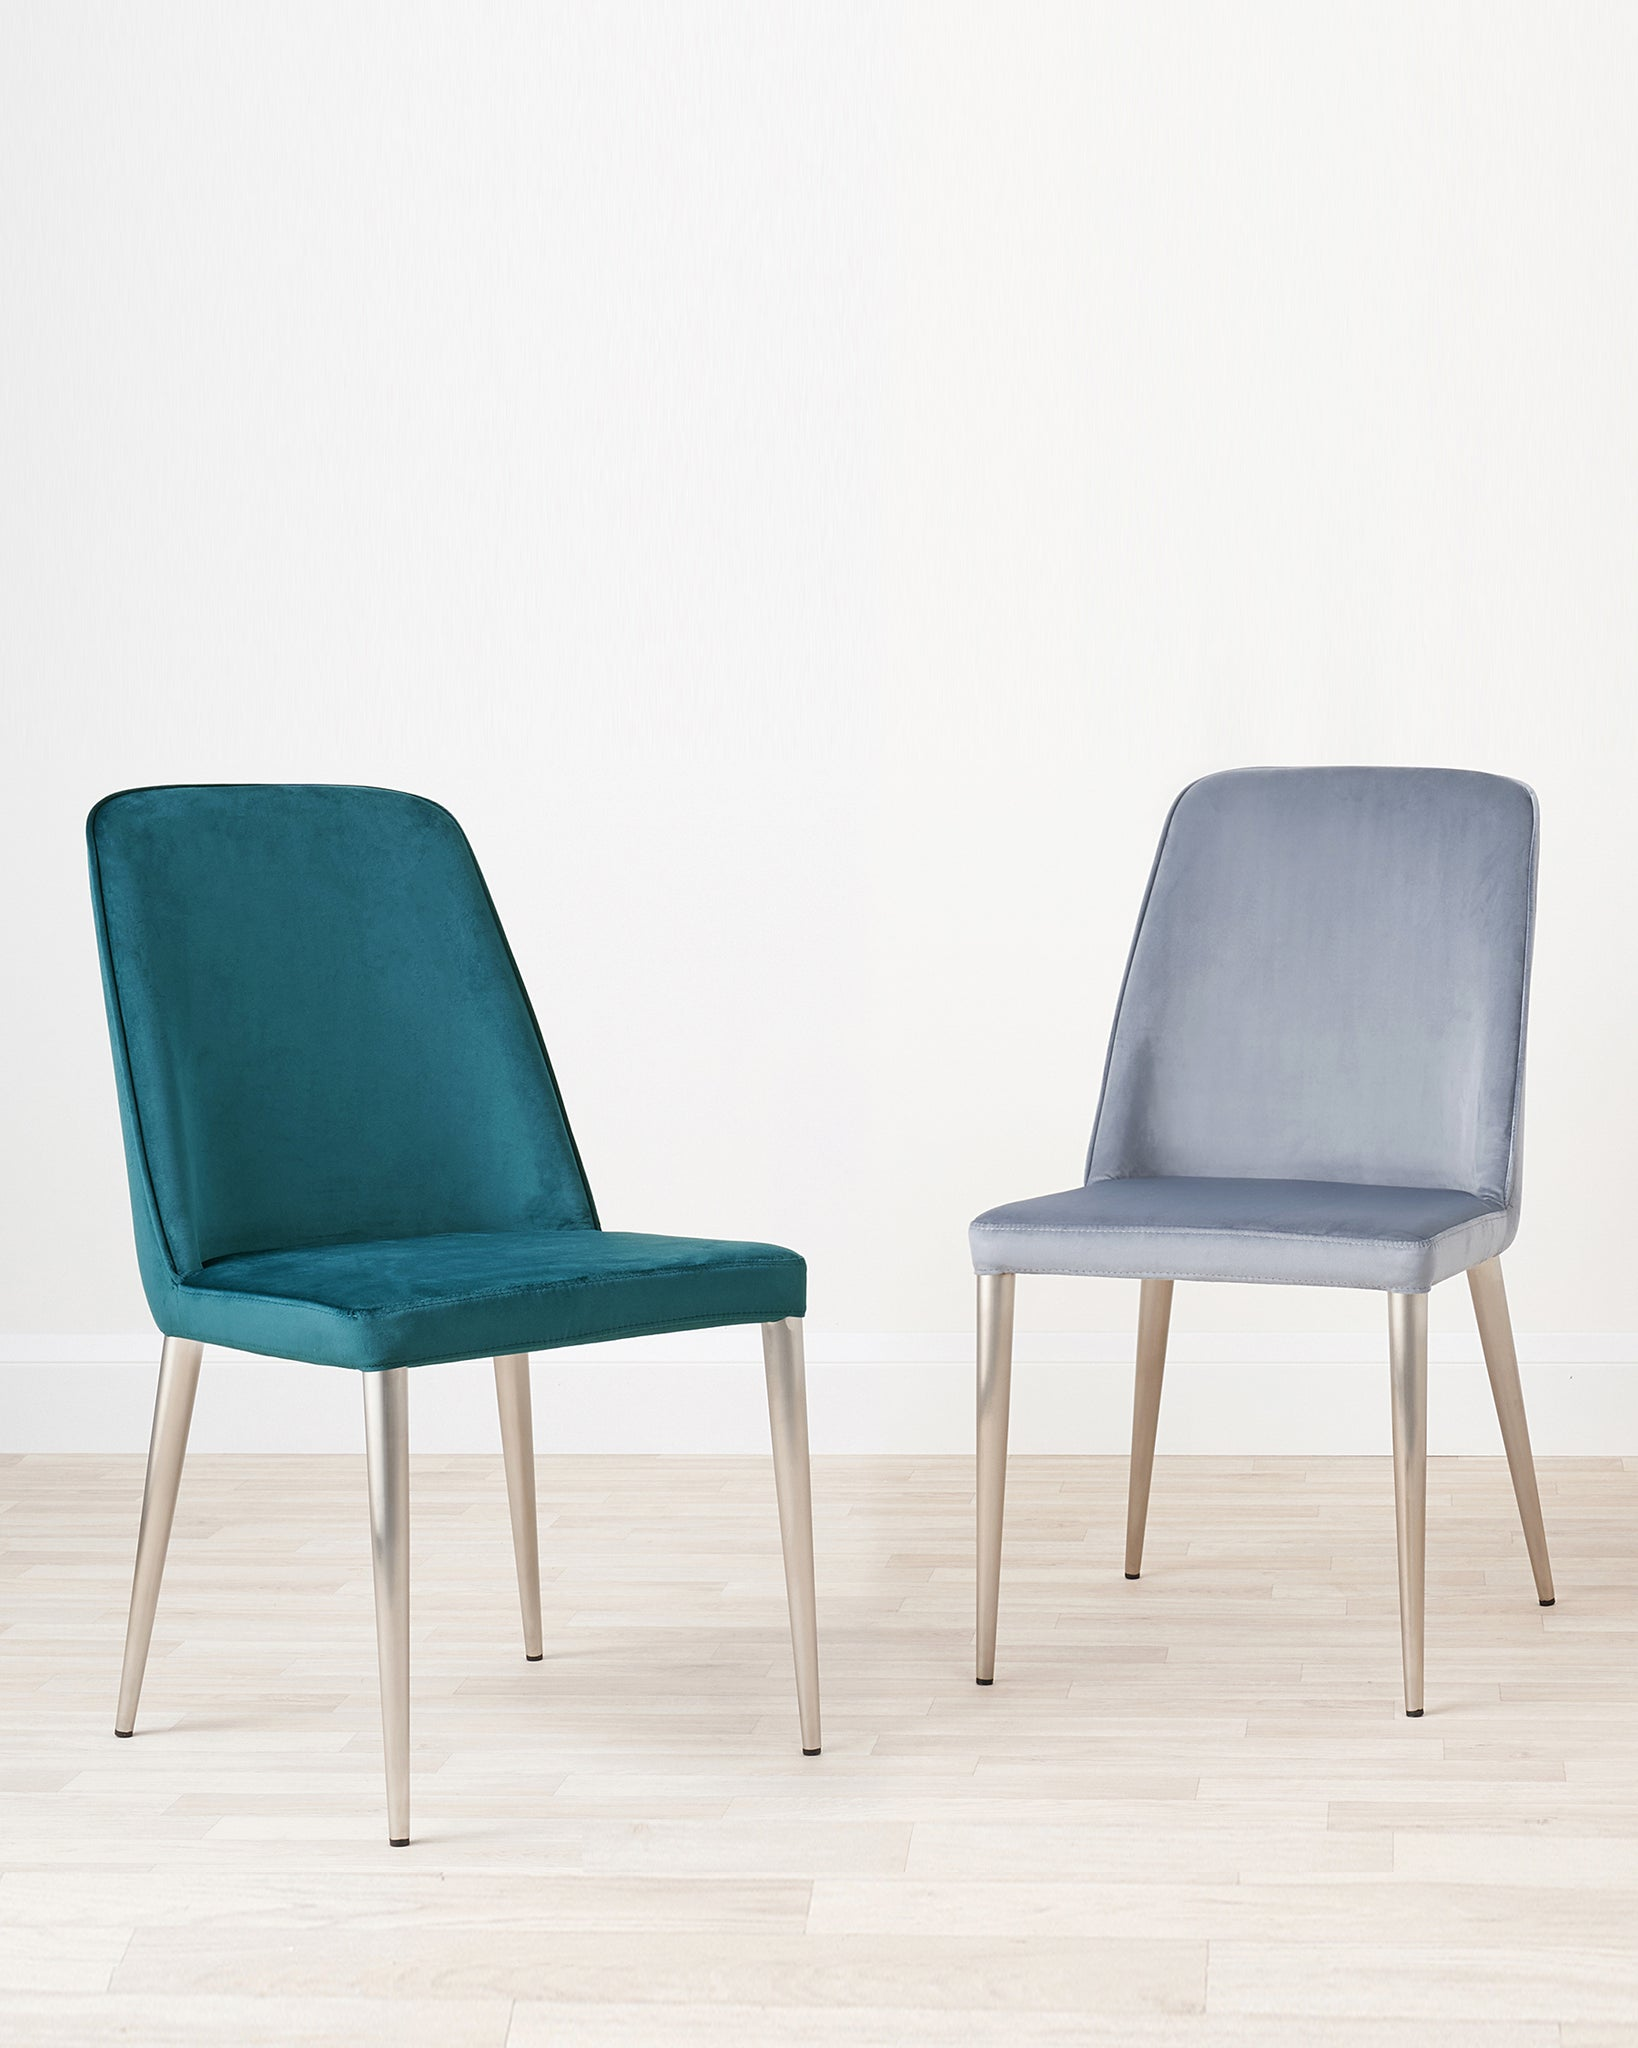 Bay Dark Teal Velvet And Brushed Steel Chair - Set Of 2